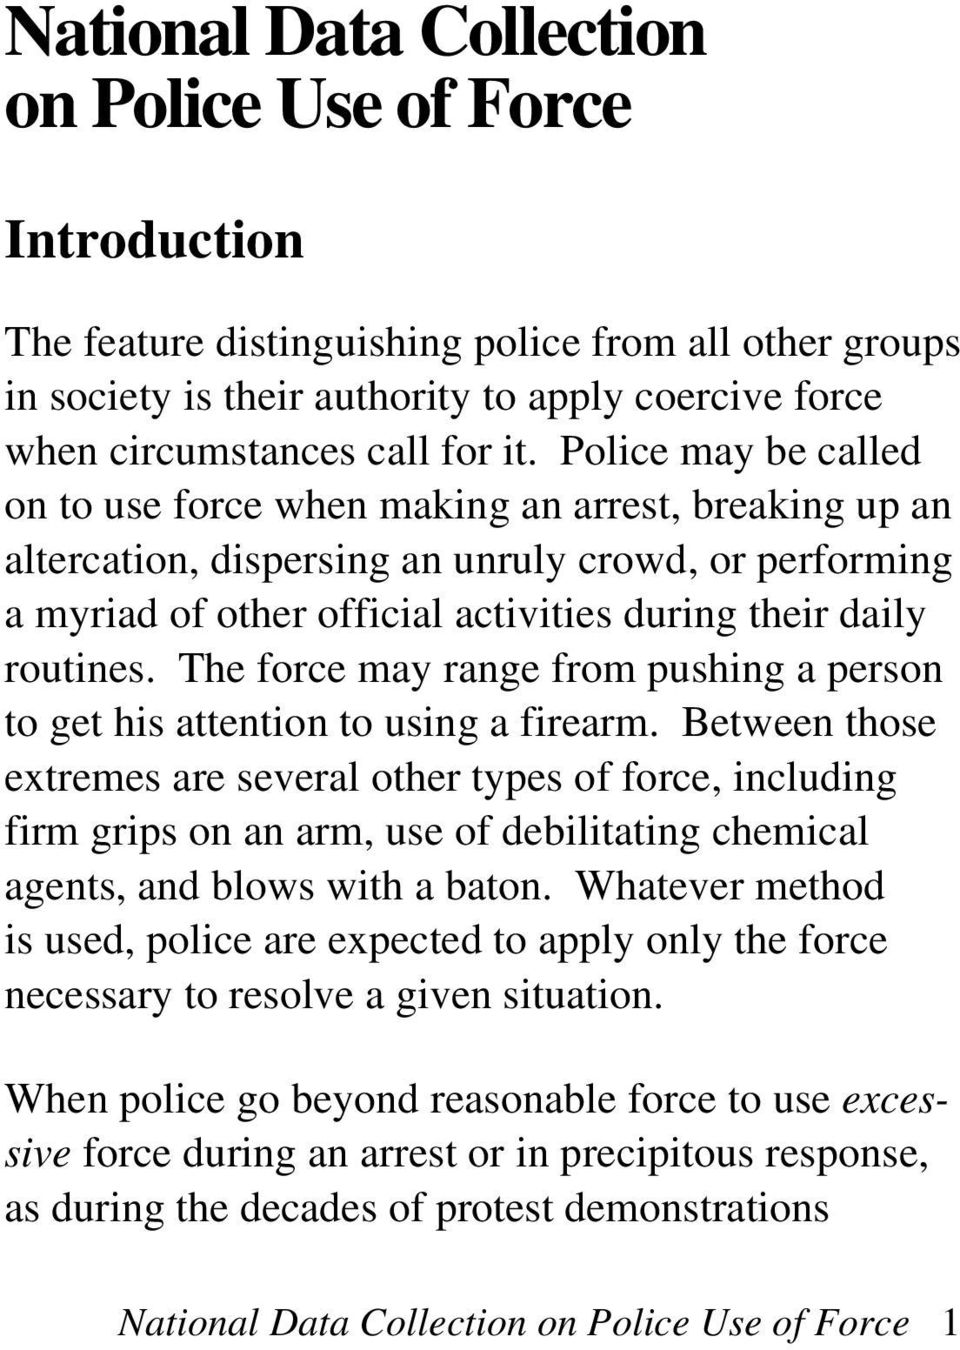 The force may range from pushing a person to get his attention to using a firearm.